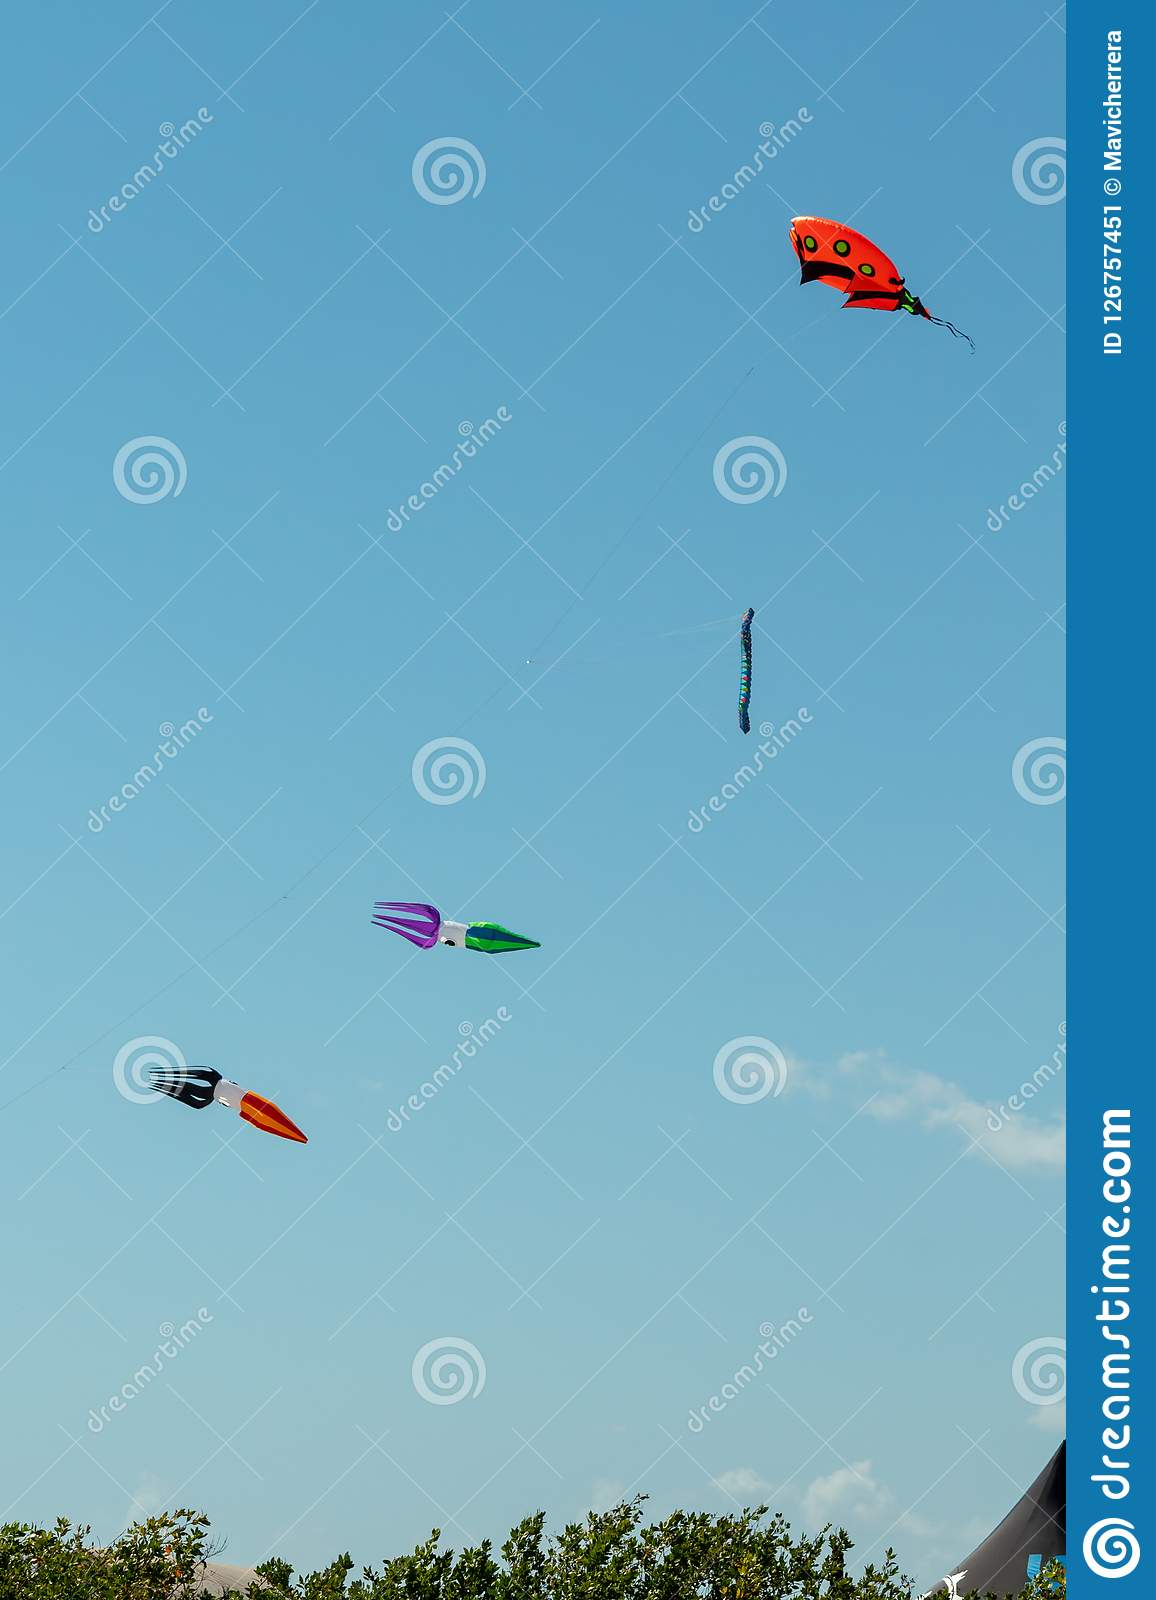 Kite competition on a sunny hot day. Colorful, creative kites fl